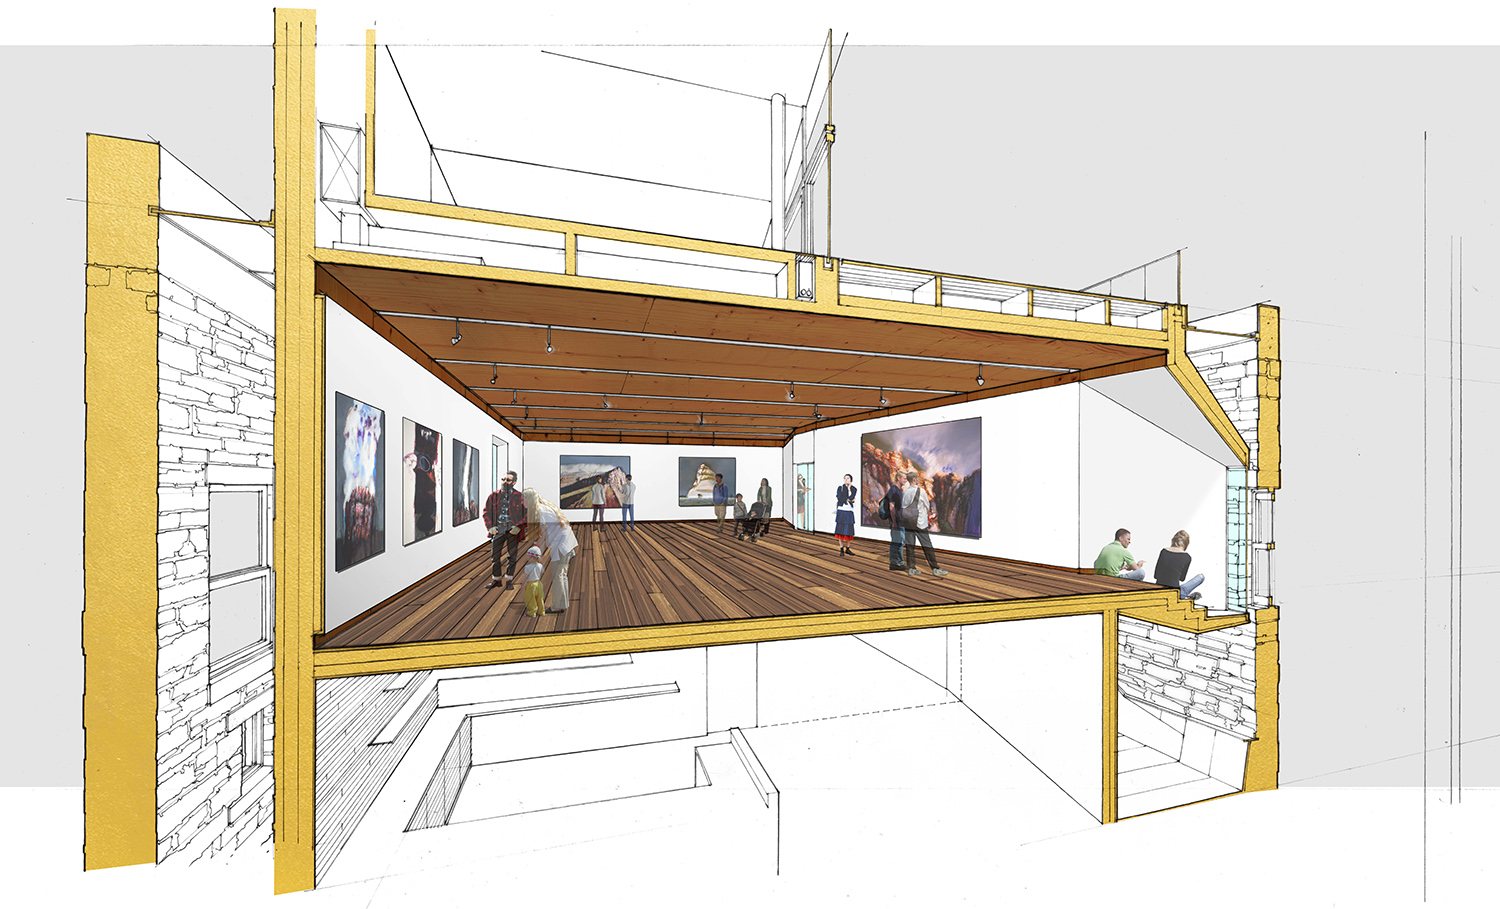 Mezzanine Main Gallery with Protecting Nook Looking toward the Historic Window LTL Architects